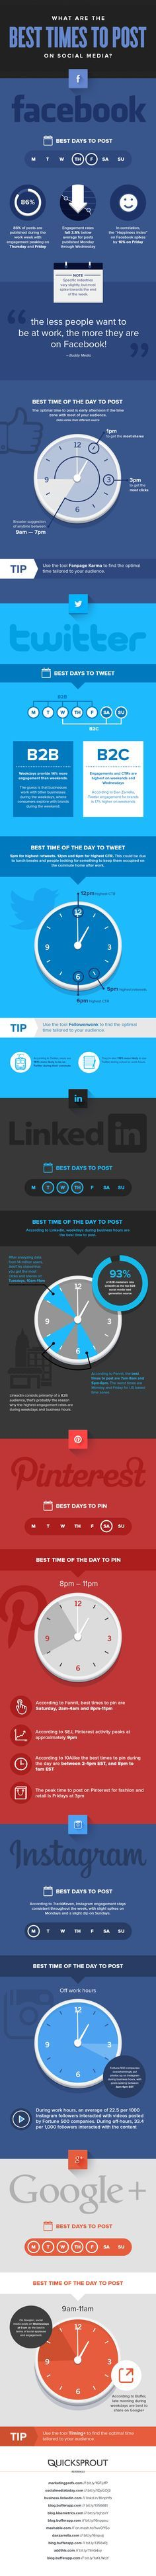 What Are The Best Times To Post On Social Media? #infographic http://almostpractical.com/best-time-post-social-media/?utm_content=buffer21e52&utm_medium=social&utm_source=pinterest.com&utm_campaign=buffer#more-1948